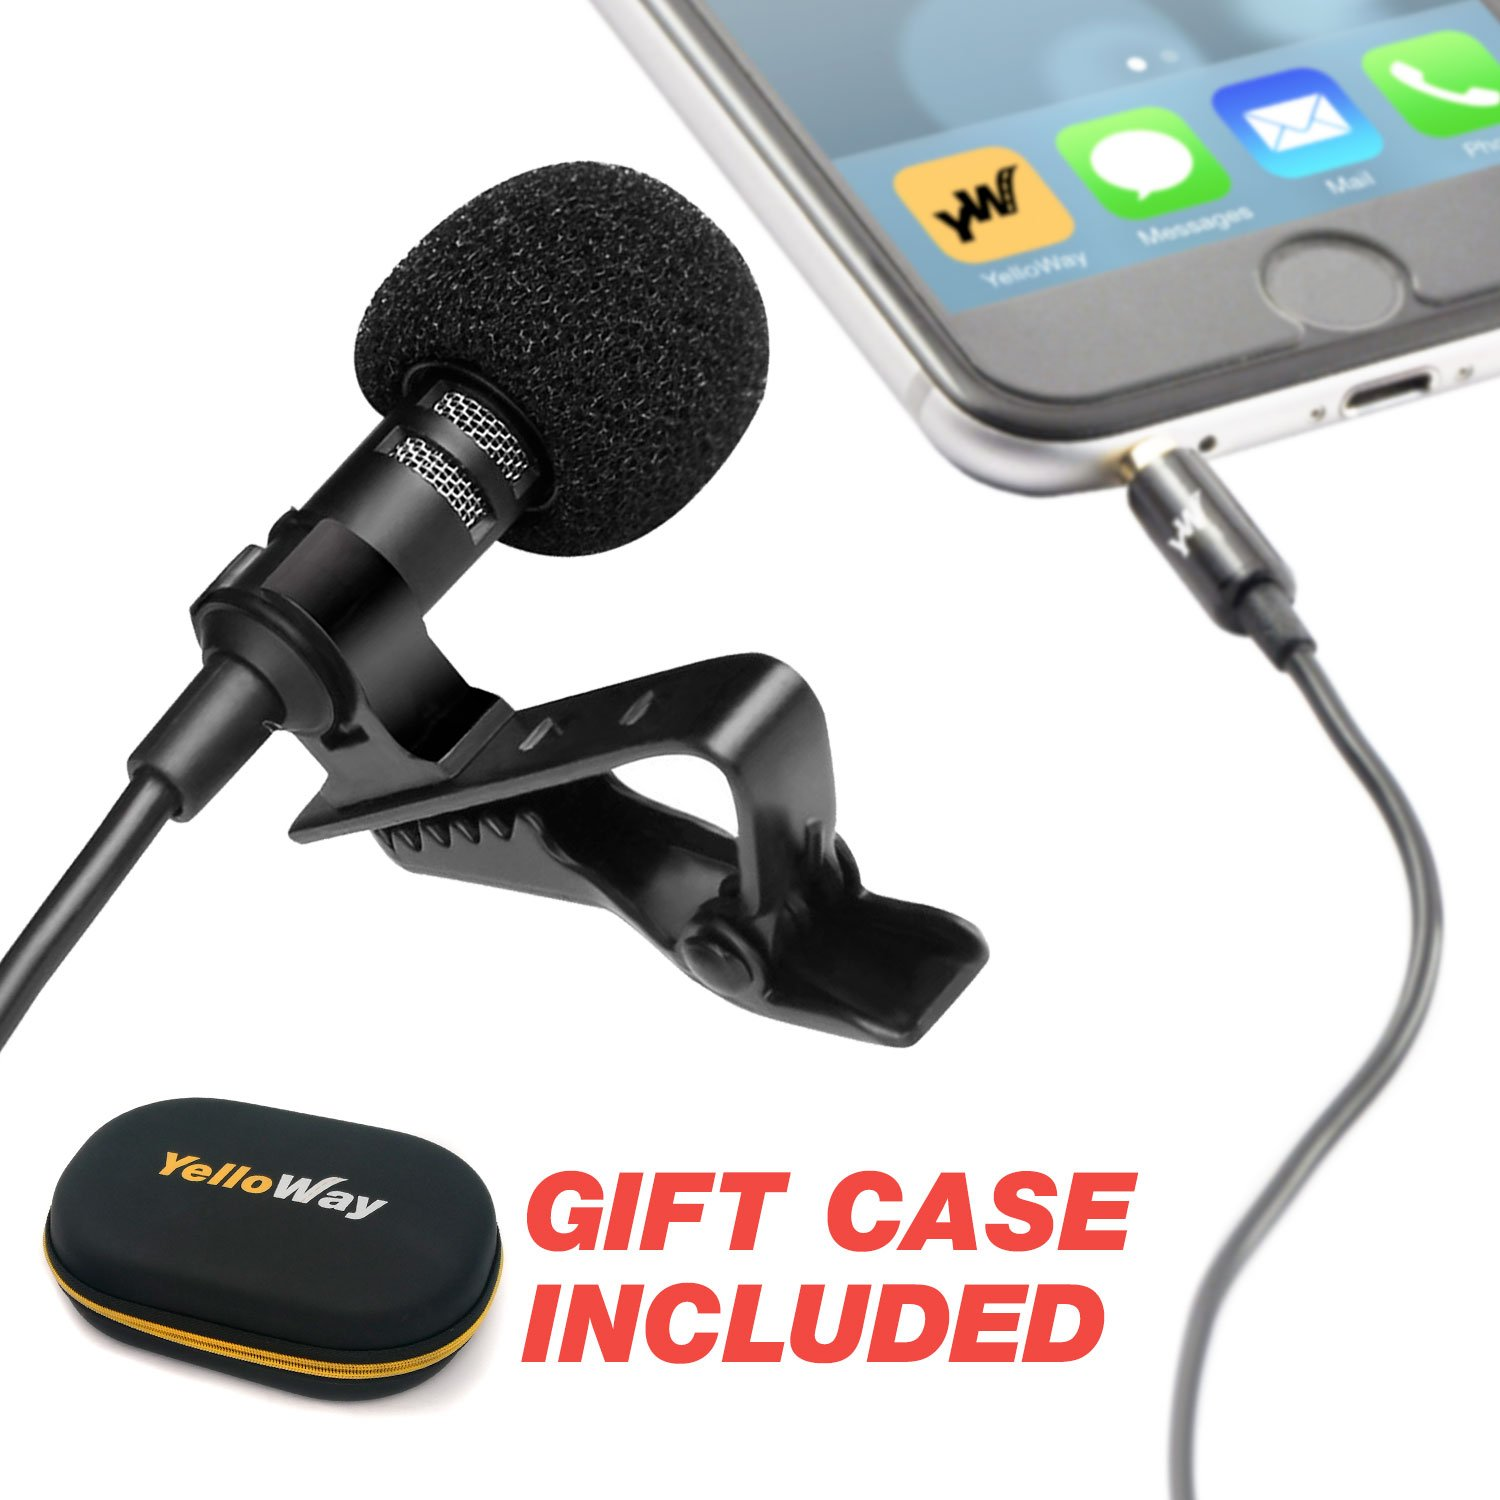 Professional Grade Lavalier Lapel Microphone - For Youtube Interviews & Podcasting & Live Streaming & Video - Perfect Lav Mic for Recording on Iphone 5, 6, 6s, 7 plus, 8, X - External Mic with Clip On by LETIT.BEER